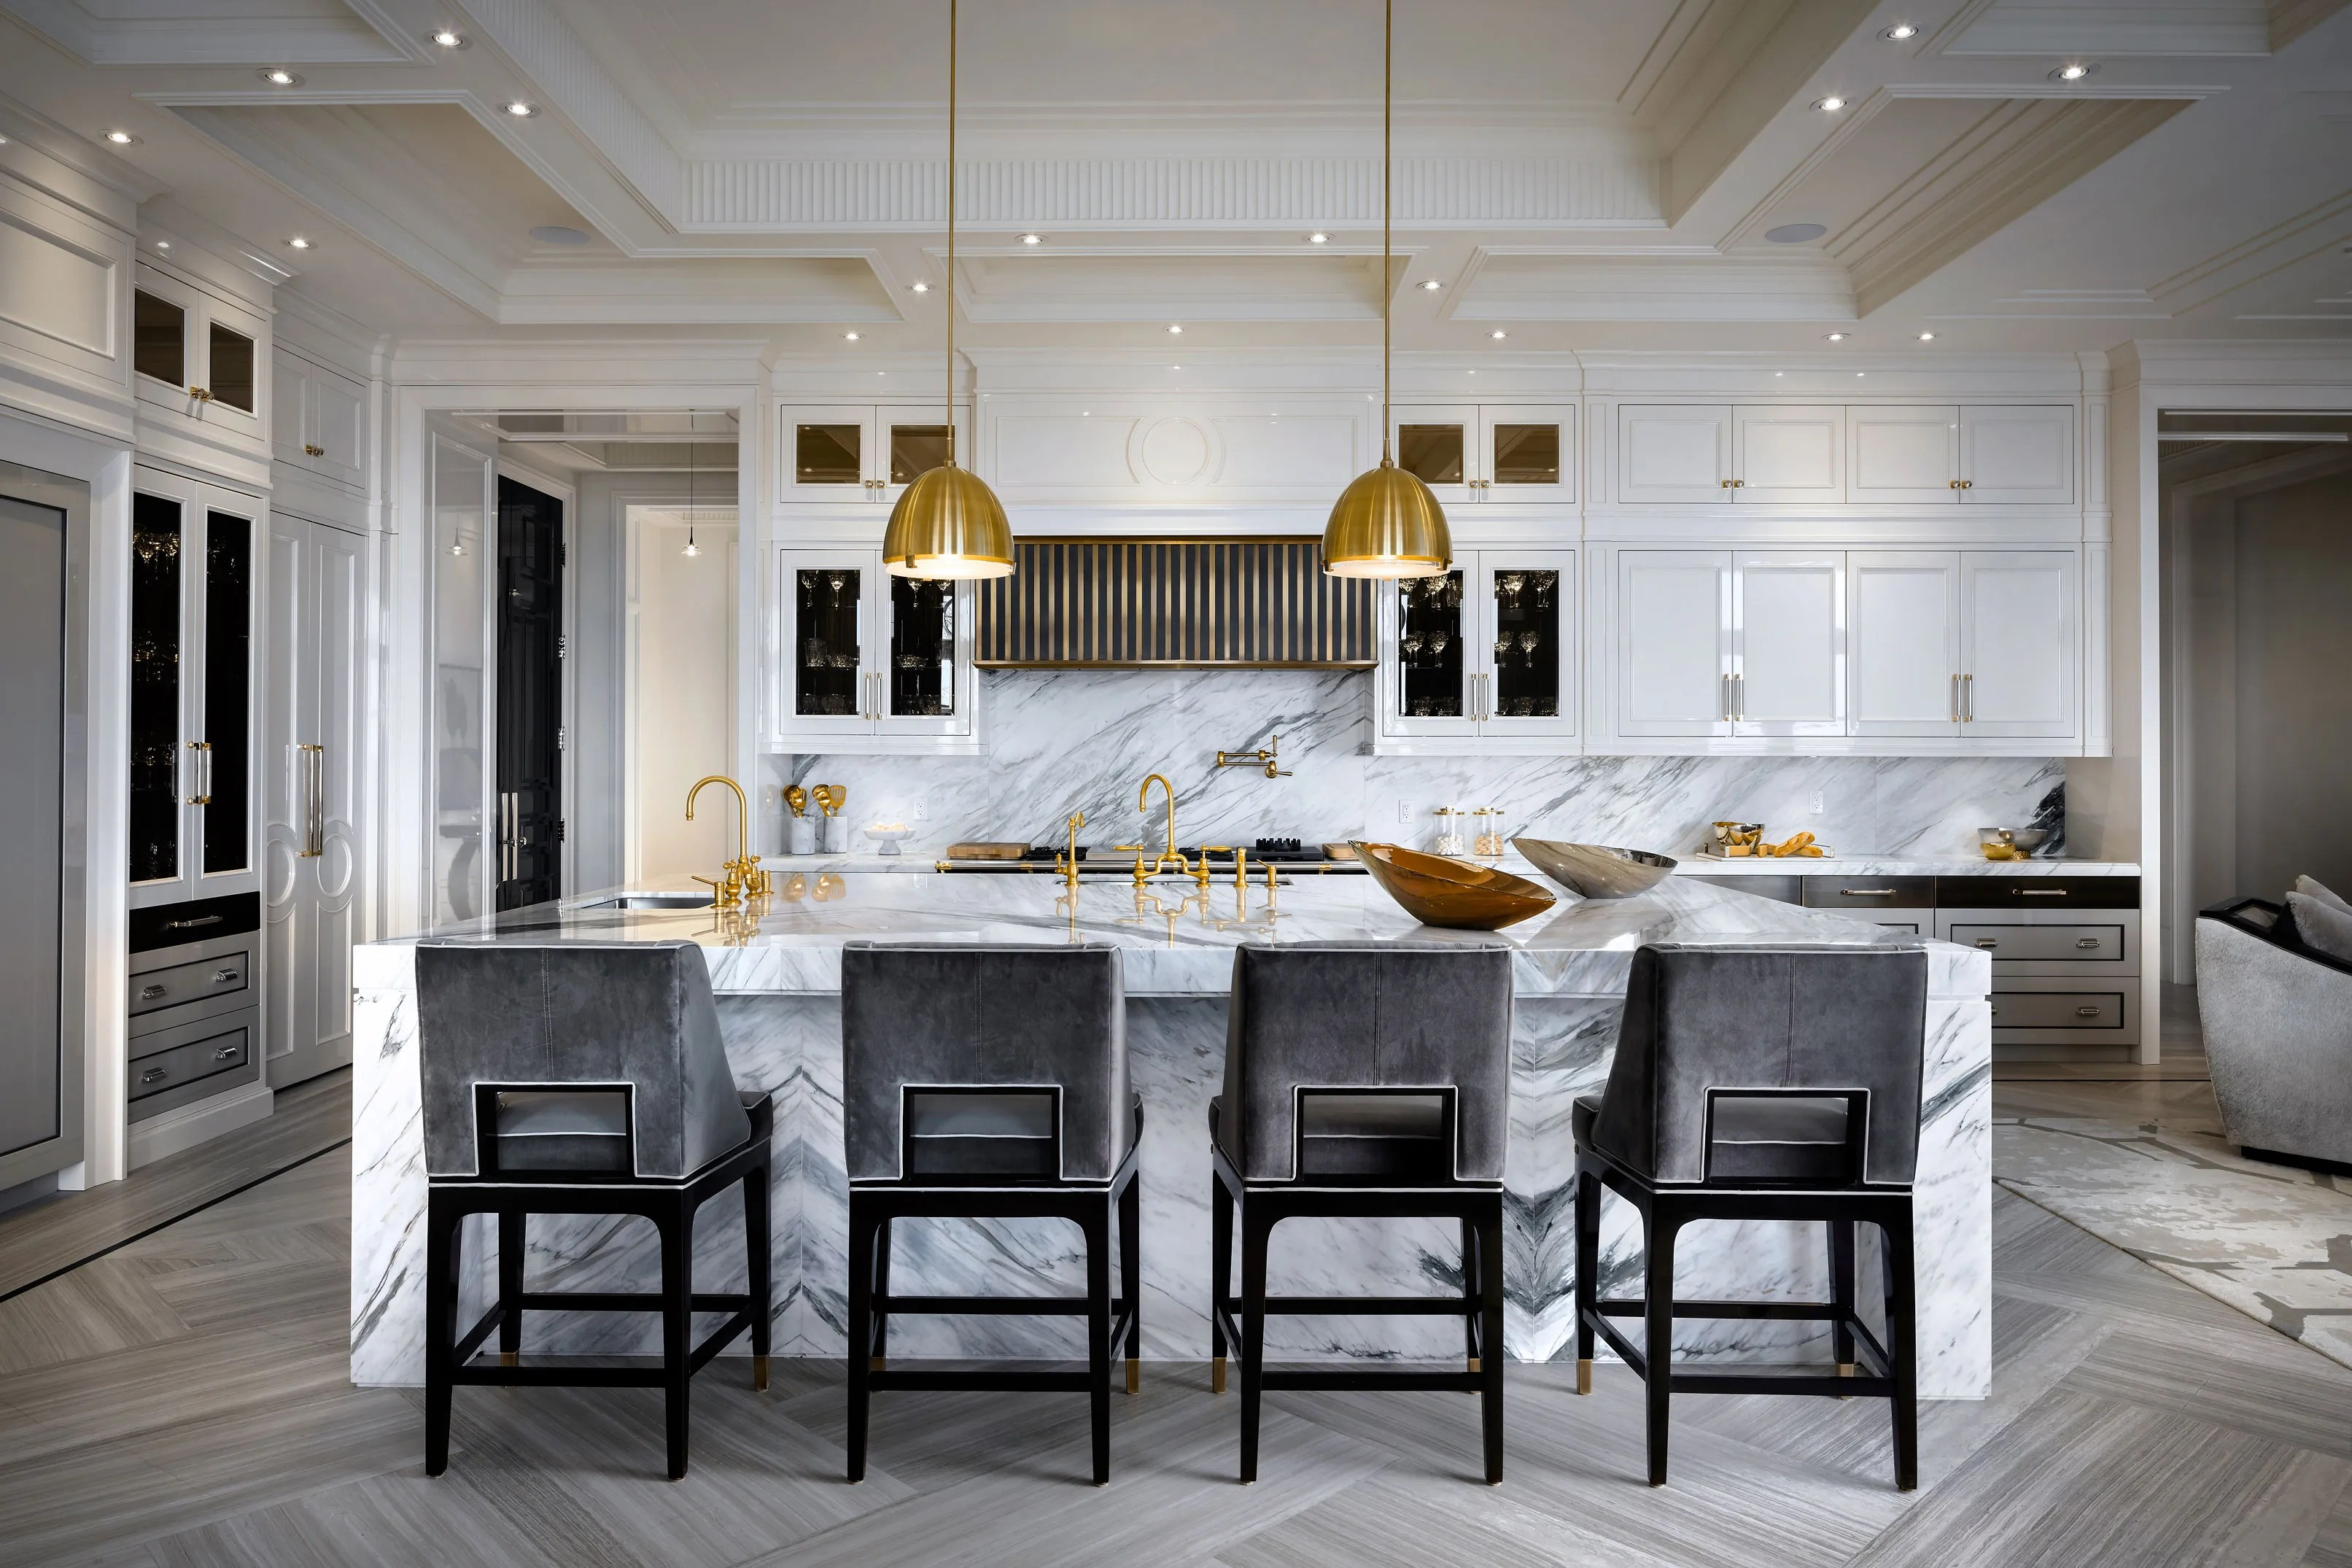 Kitchen Design Ideas Canada An Ultra Luxurious 50 Million Canadian Home That S Anything But